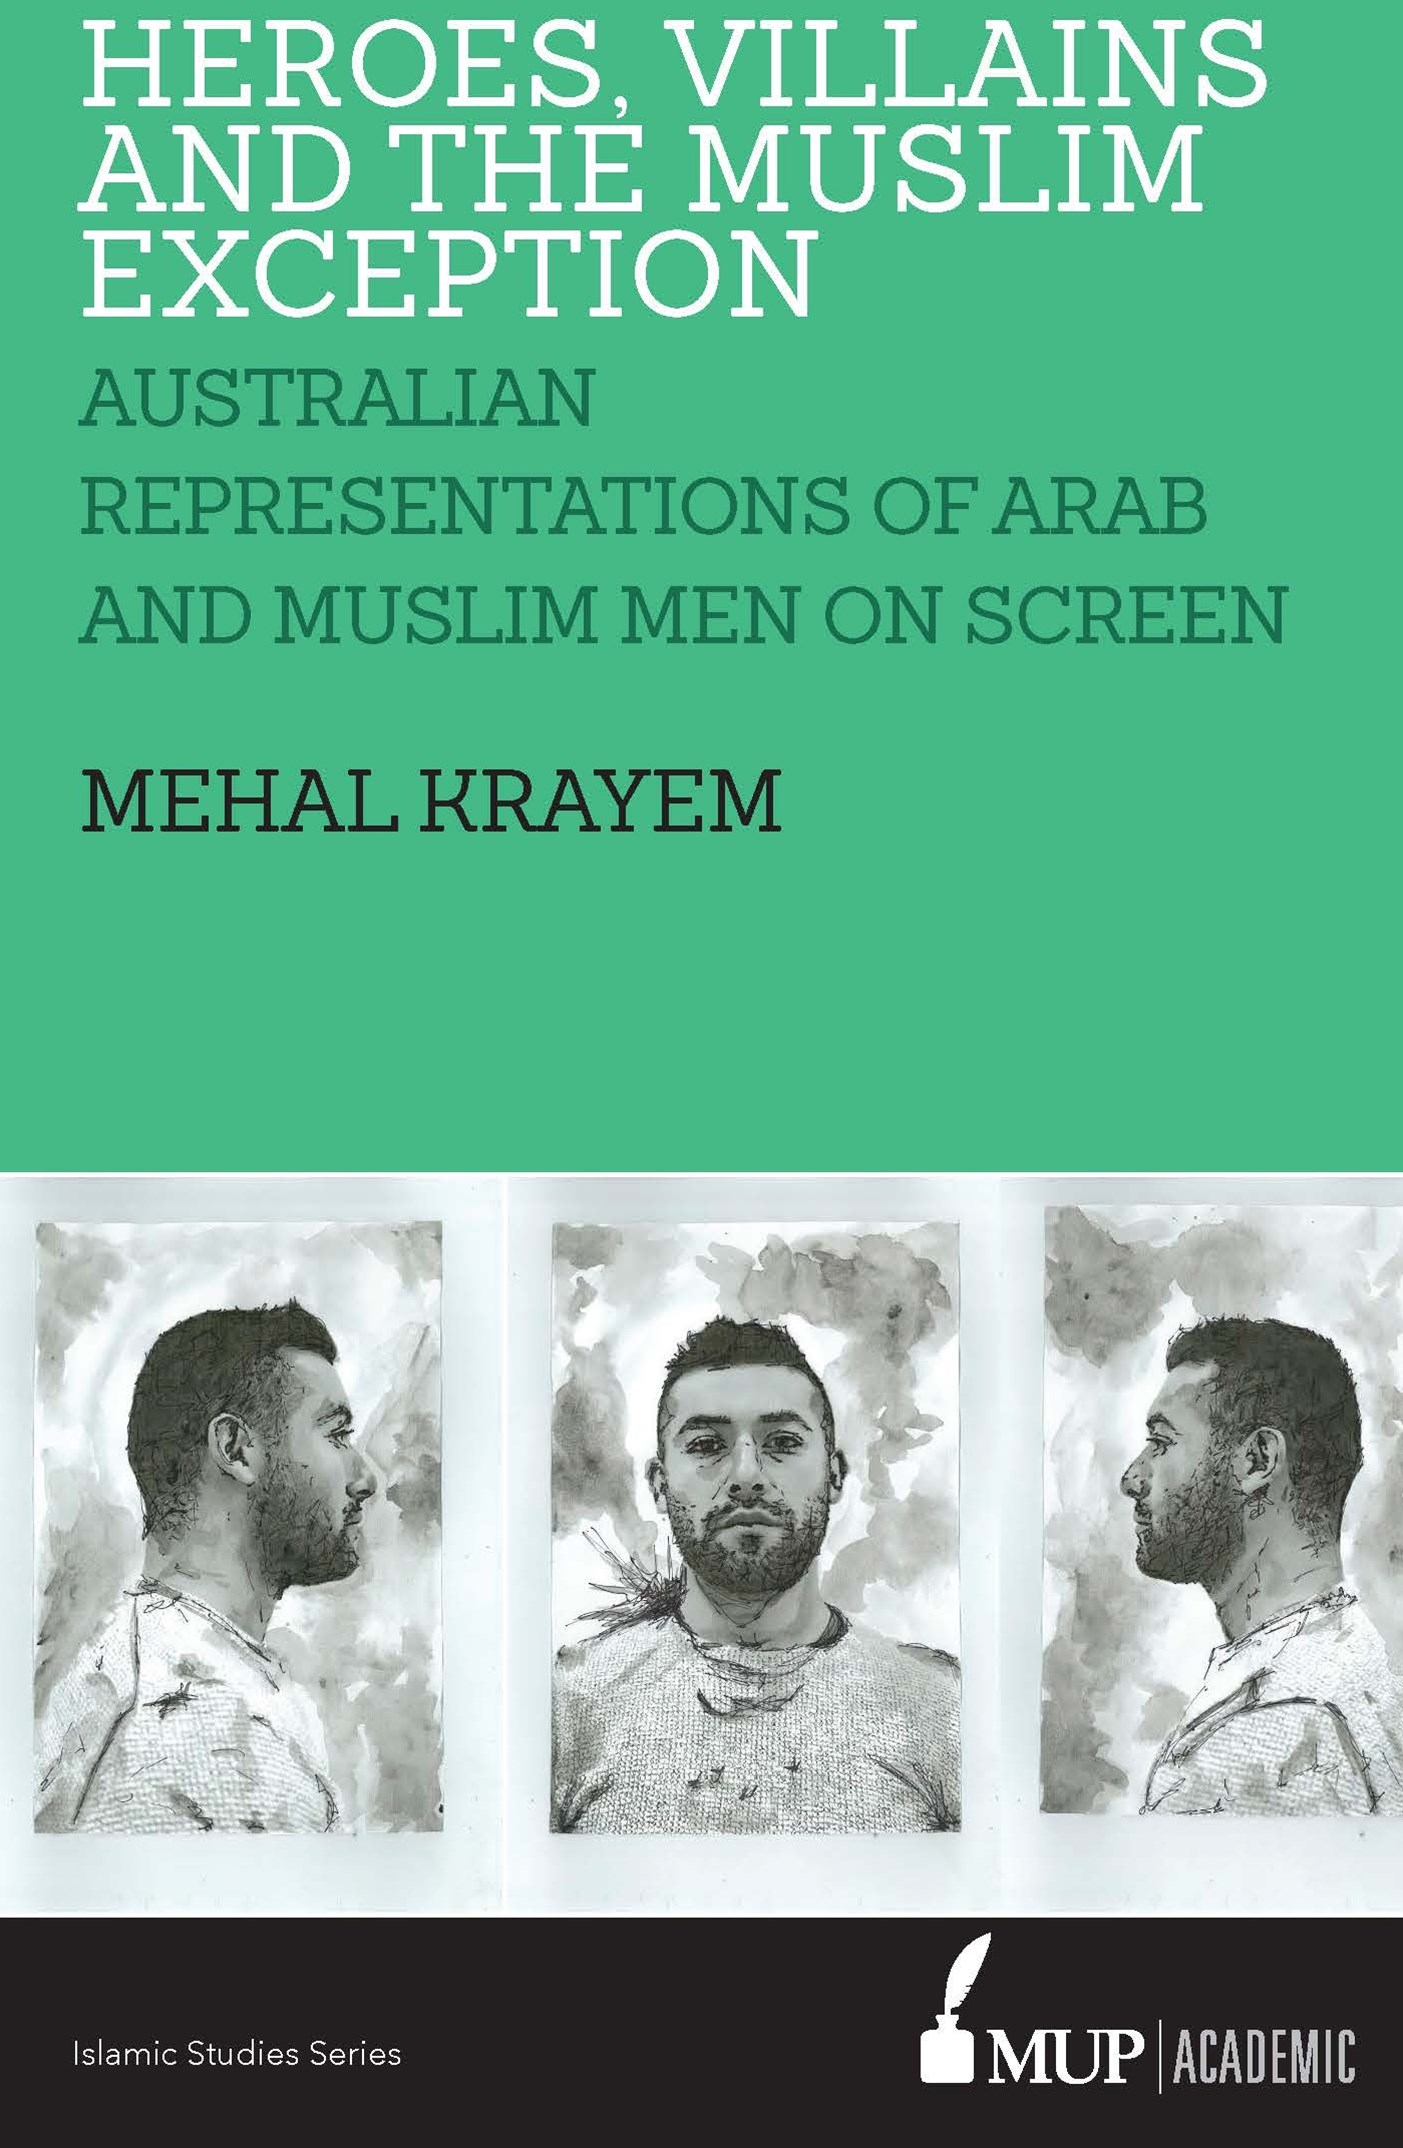 ISS 23 Heroes, villains and the muslim exception: Muslim and Arab Men in Australian Crime Drama